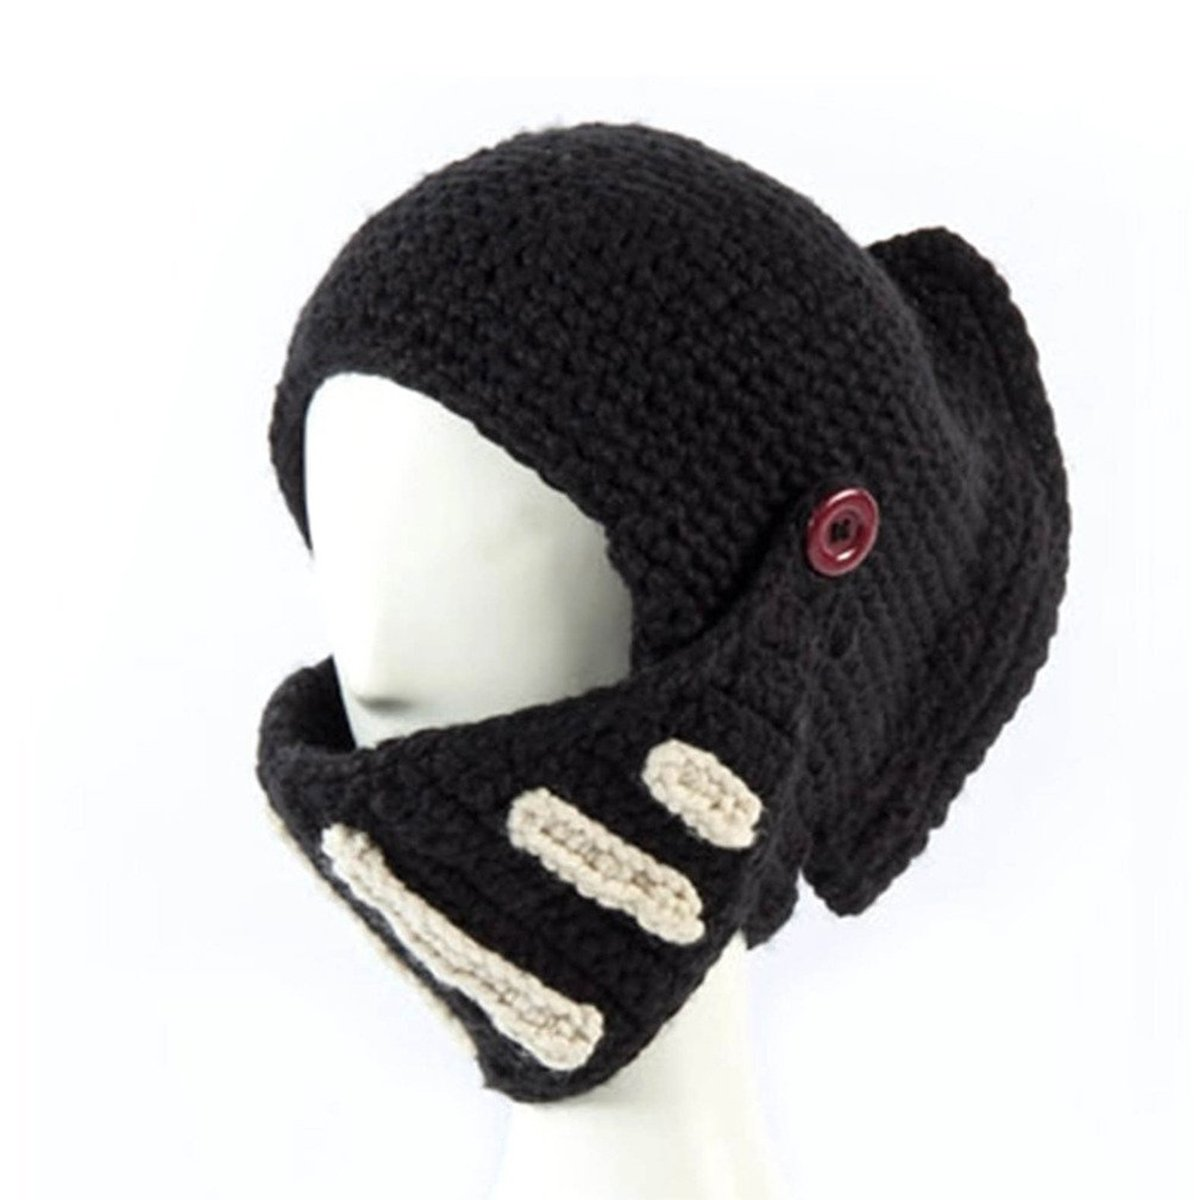 Winter Beanie Knit Skull Cap Windproof Warm Hat Face Mask Cover by LIGICKY